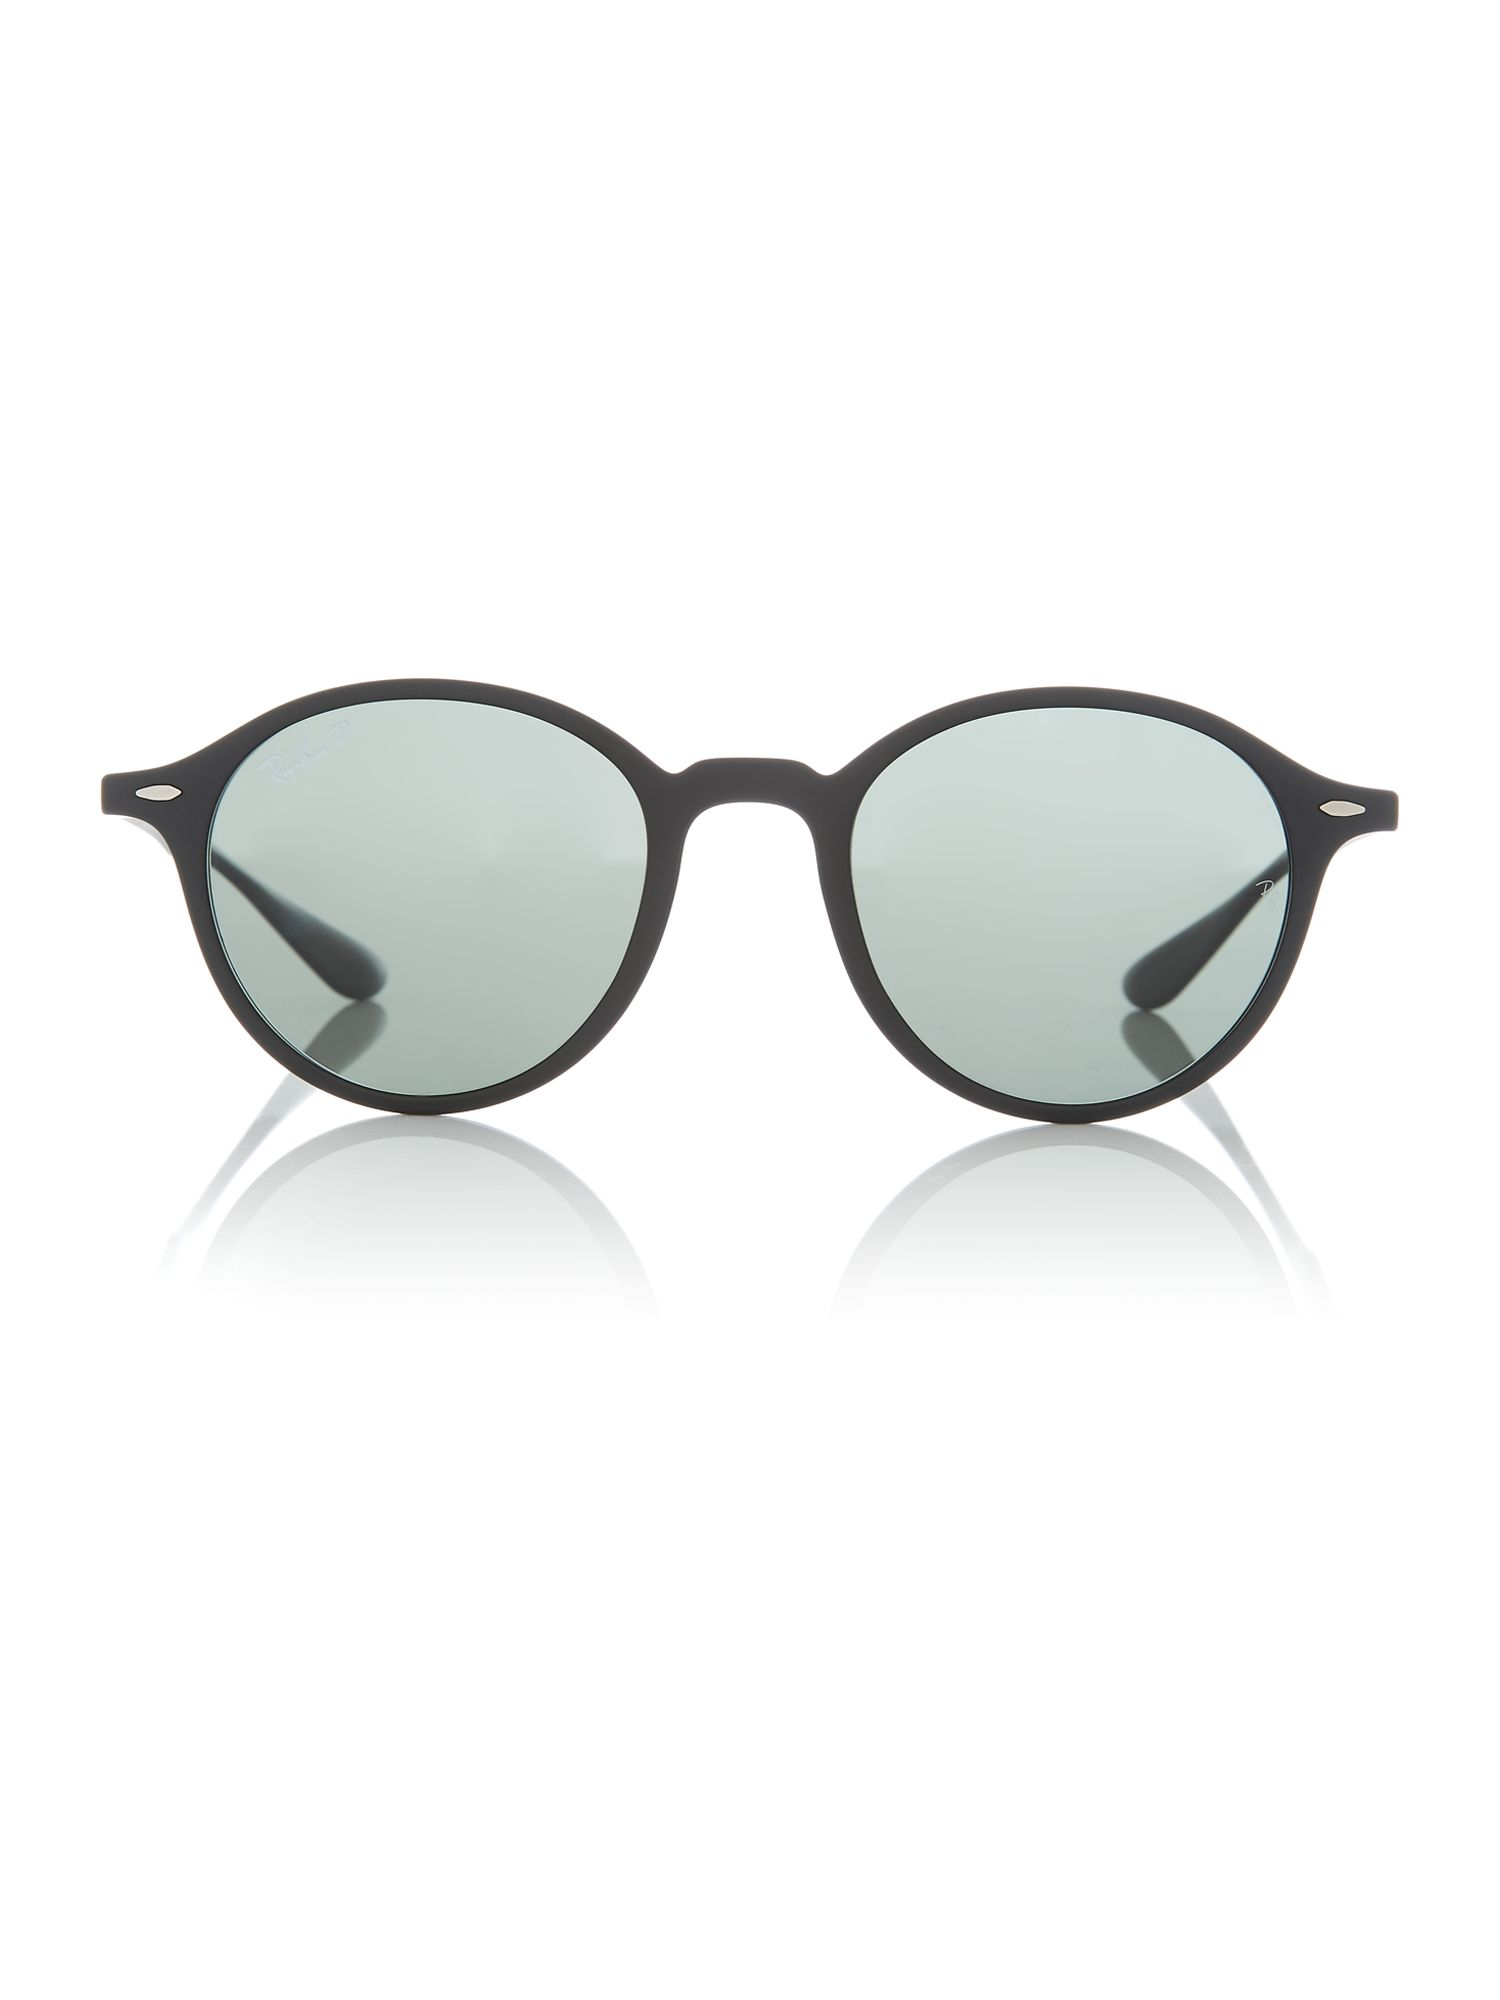 ray ban round sunglasses at house of fraser Ray Ban Round Red ray ban black rb4237 round sunglasses